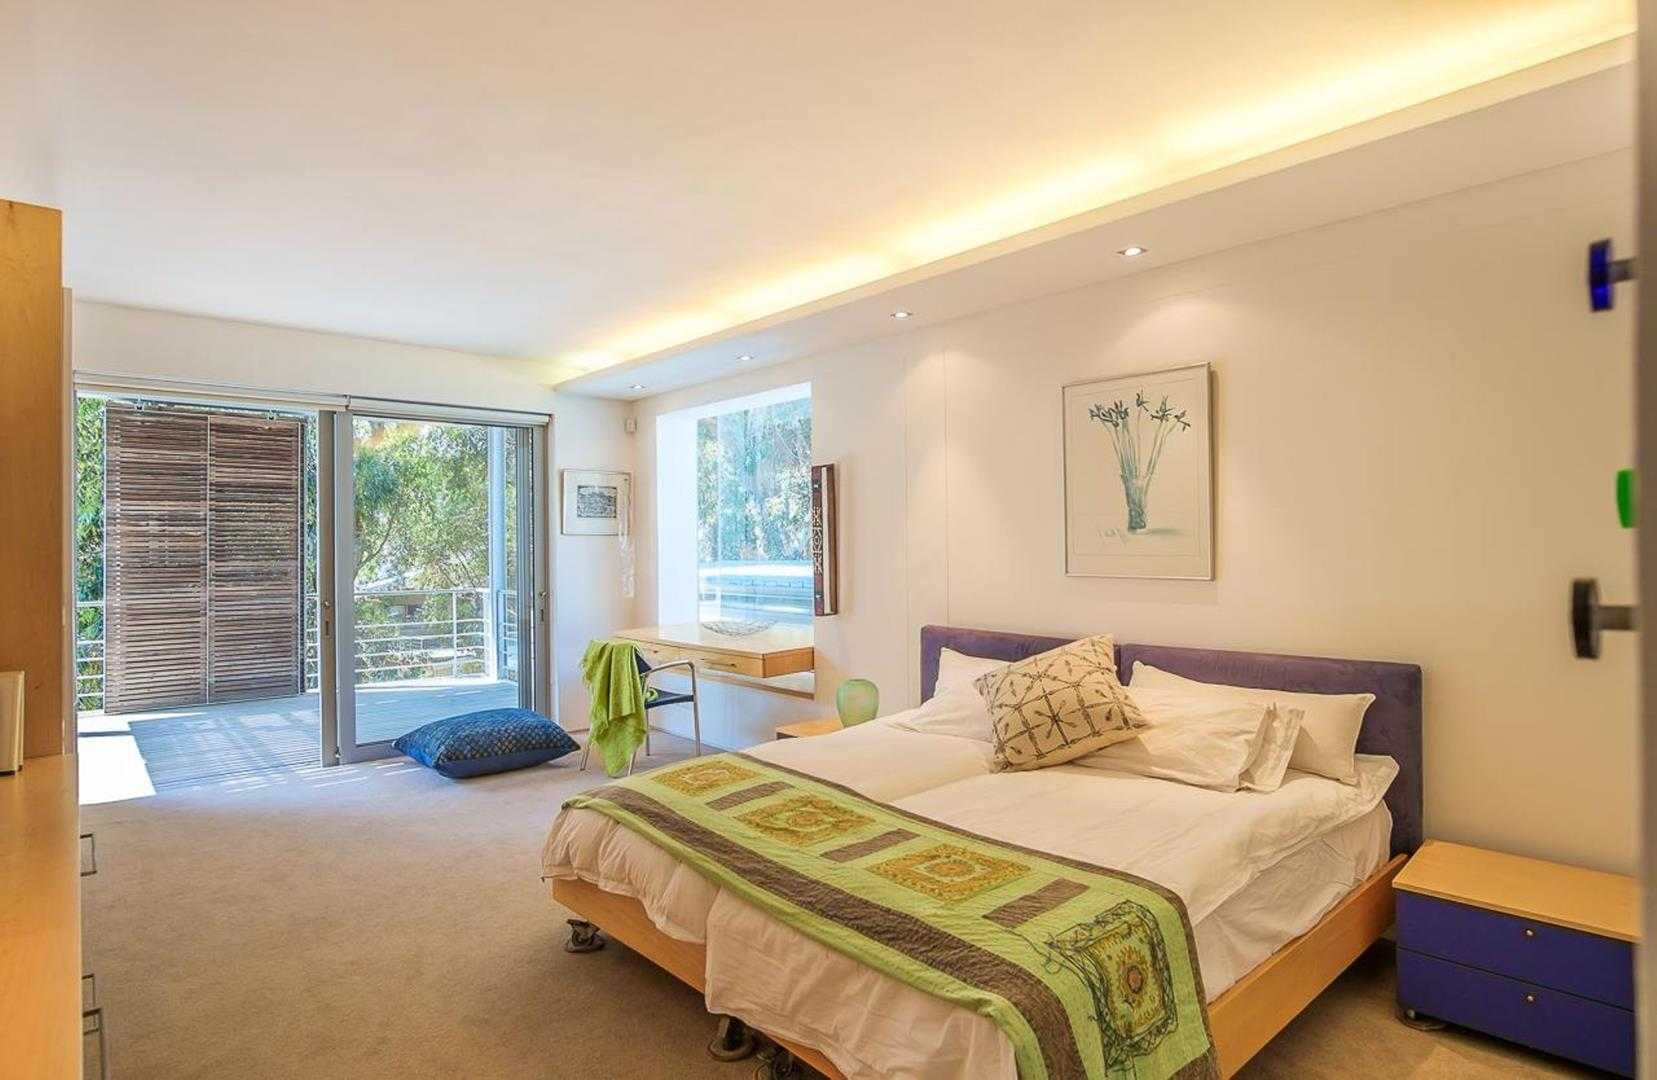 Sea side property in Cape Town, South Africa | Bedroom |Jawitz Properties | Finest Residences